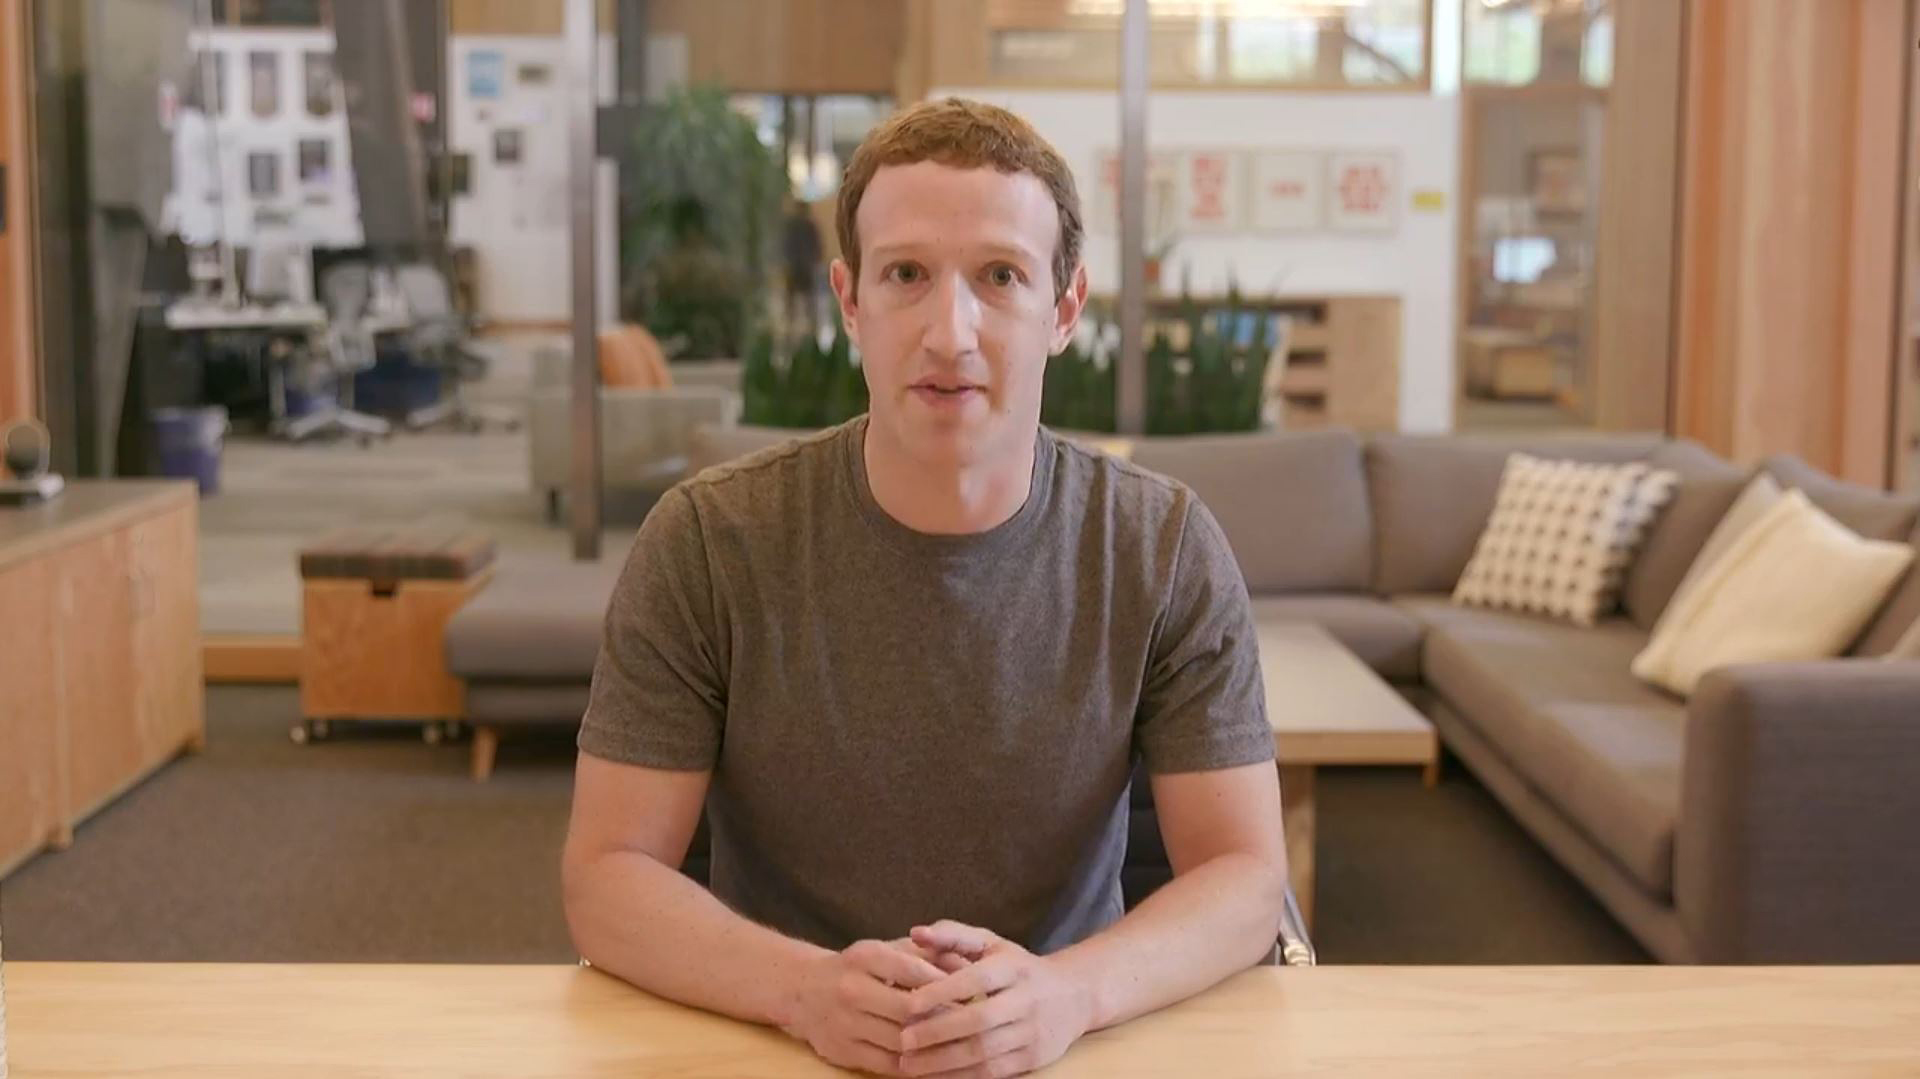 Image: Mark Zuckerberg did a Facebook live to discuss Russian election interference and next steps to protect the integrity of the democratic process.